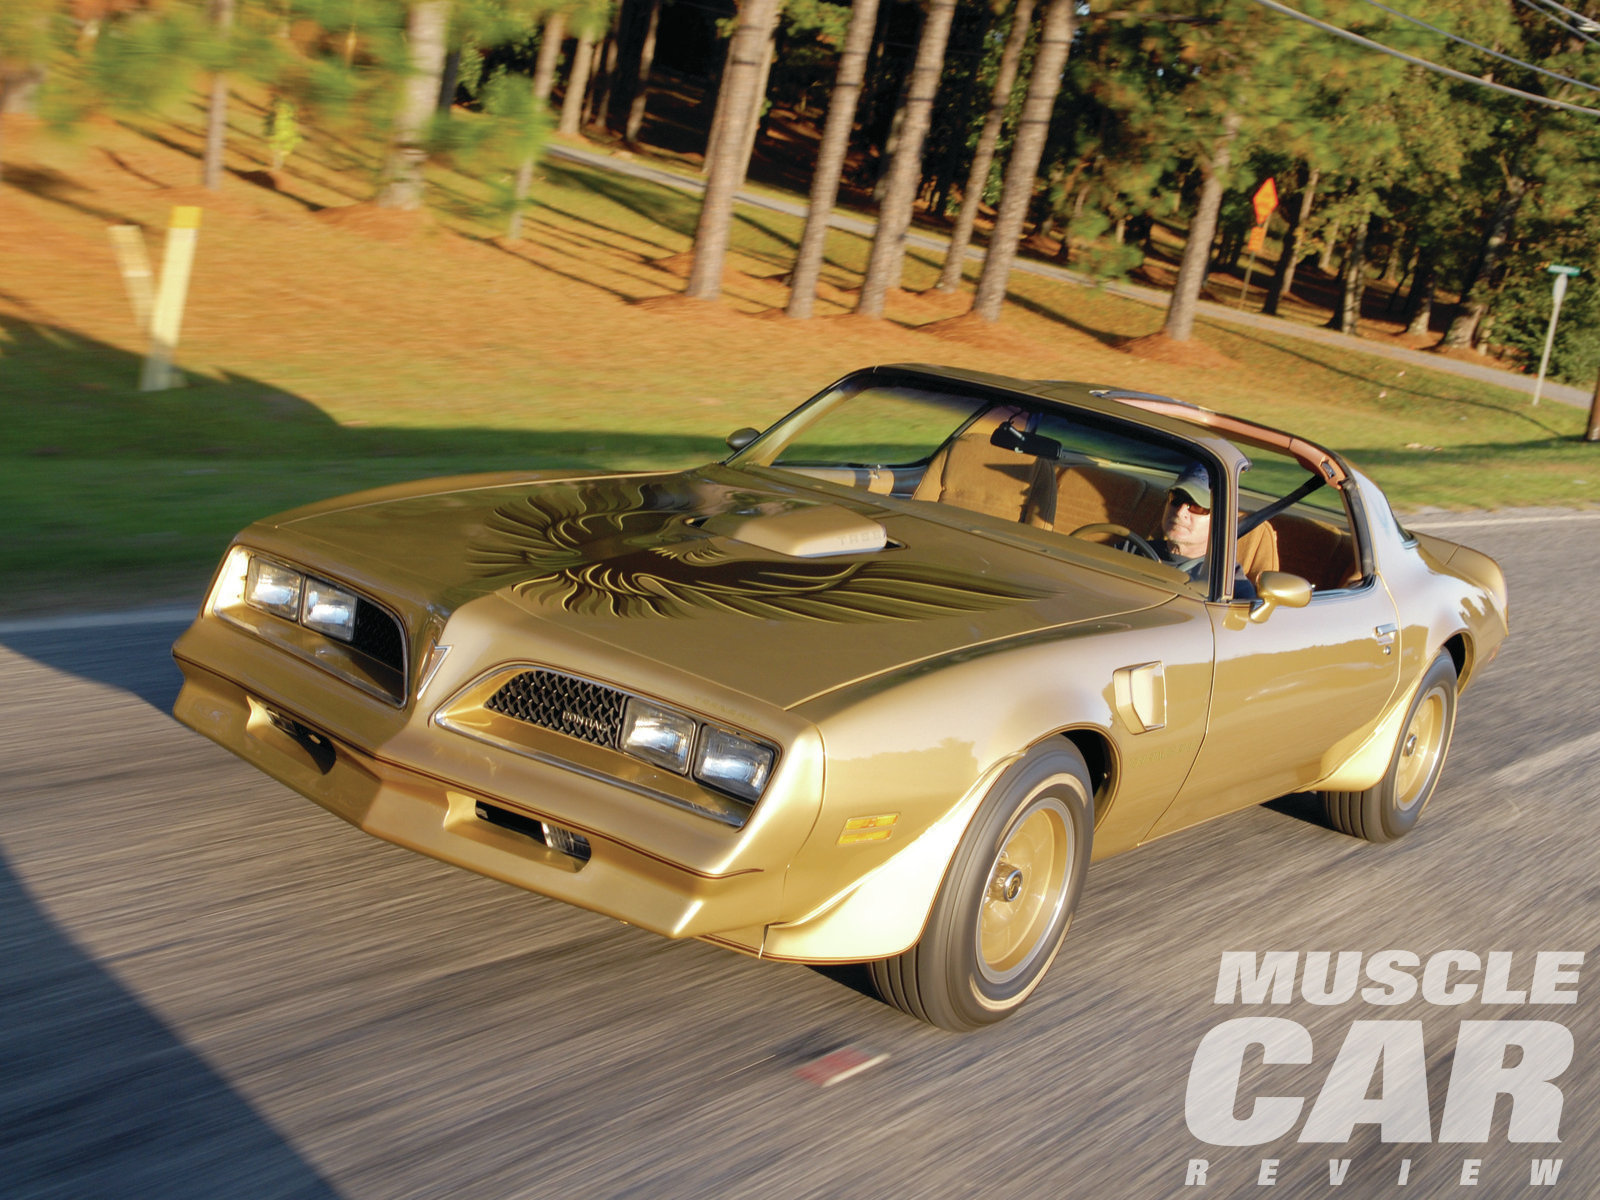 This Gold Special Edition T/A was once part of the Milton Robson collection. Tim admired it when Robson owned it and jumped at the chance to buy it when R-M auctioned the collection.